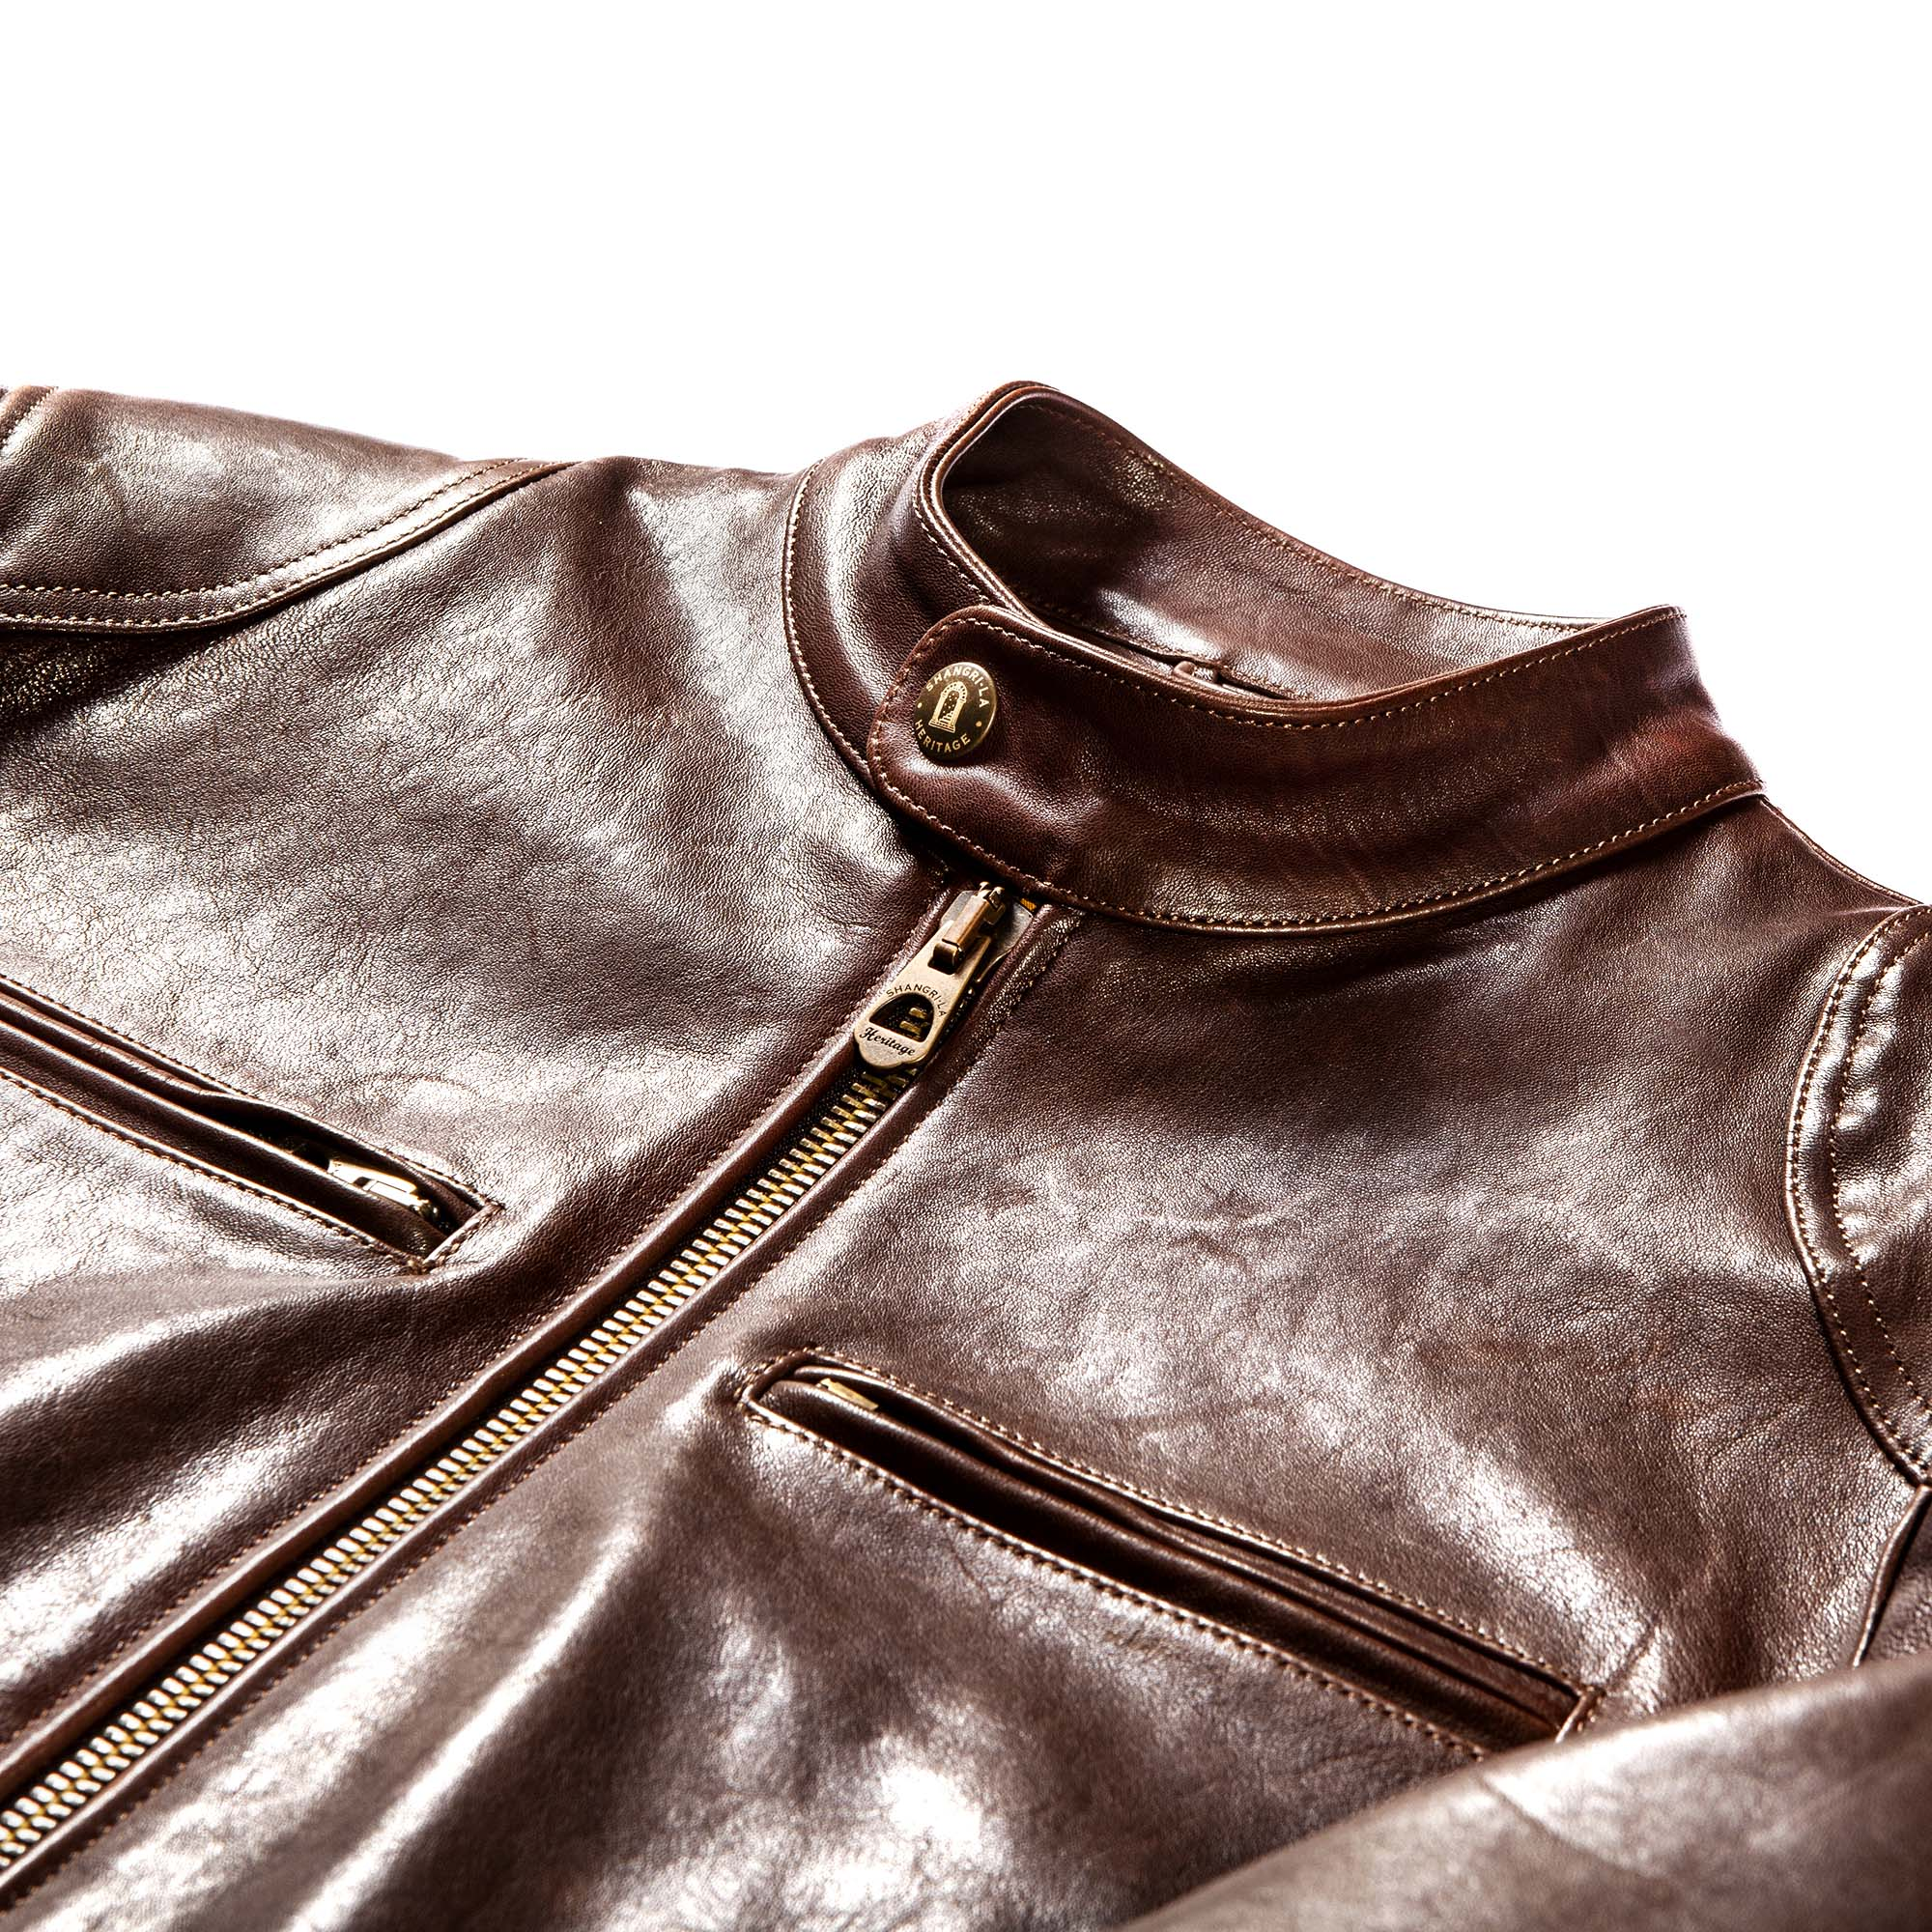 shangri-la-heritage-cafe-racer-brown-lambskin-jacket-still-life-collar